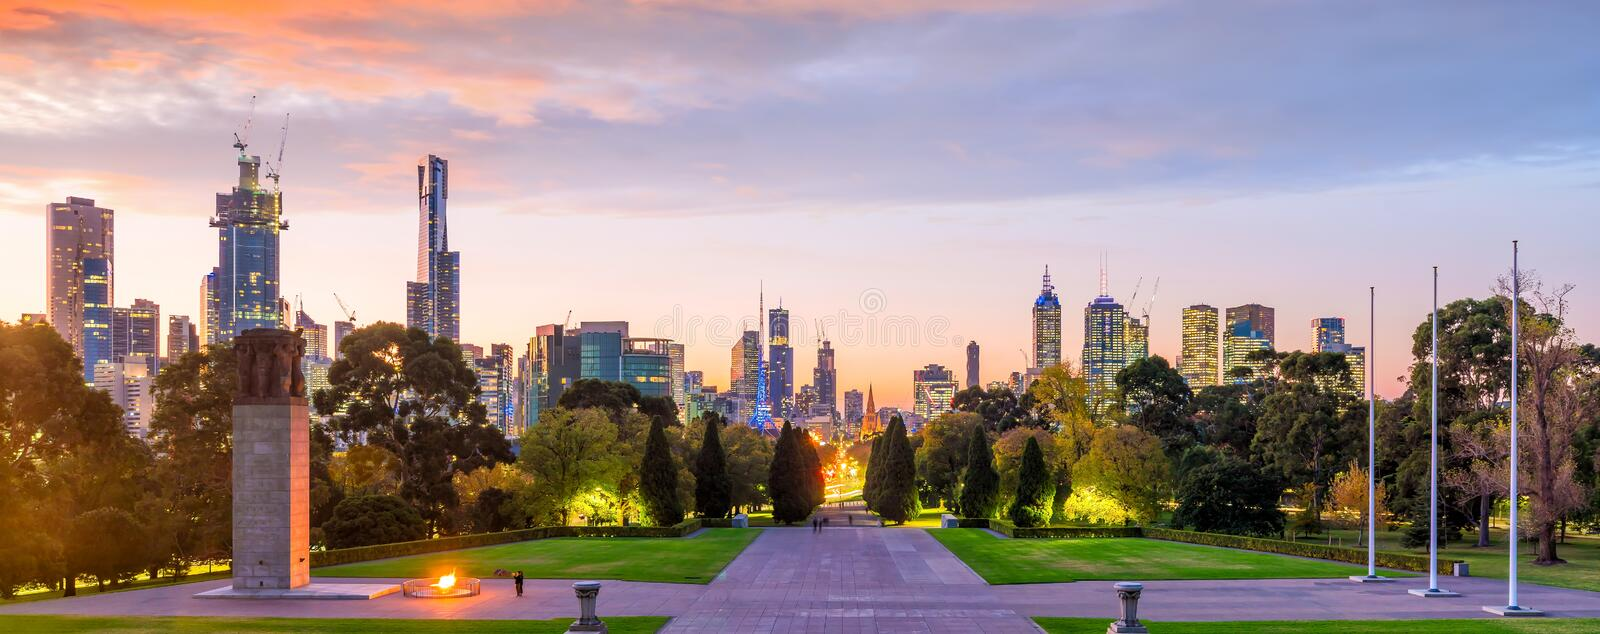 Melbourne city skyline at twilight in Australia royalty free stock photography